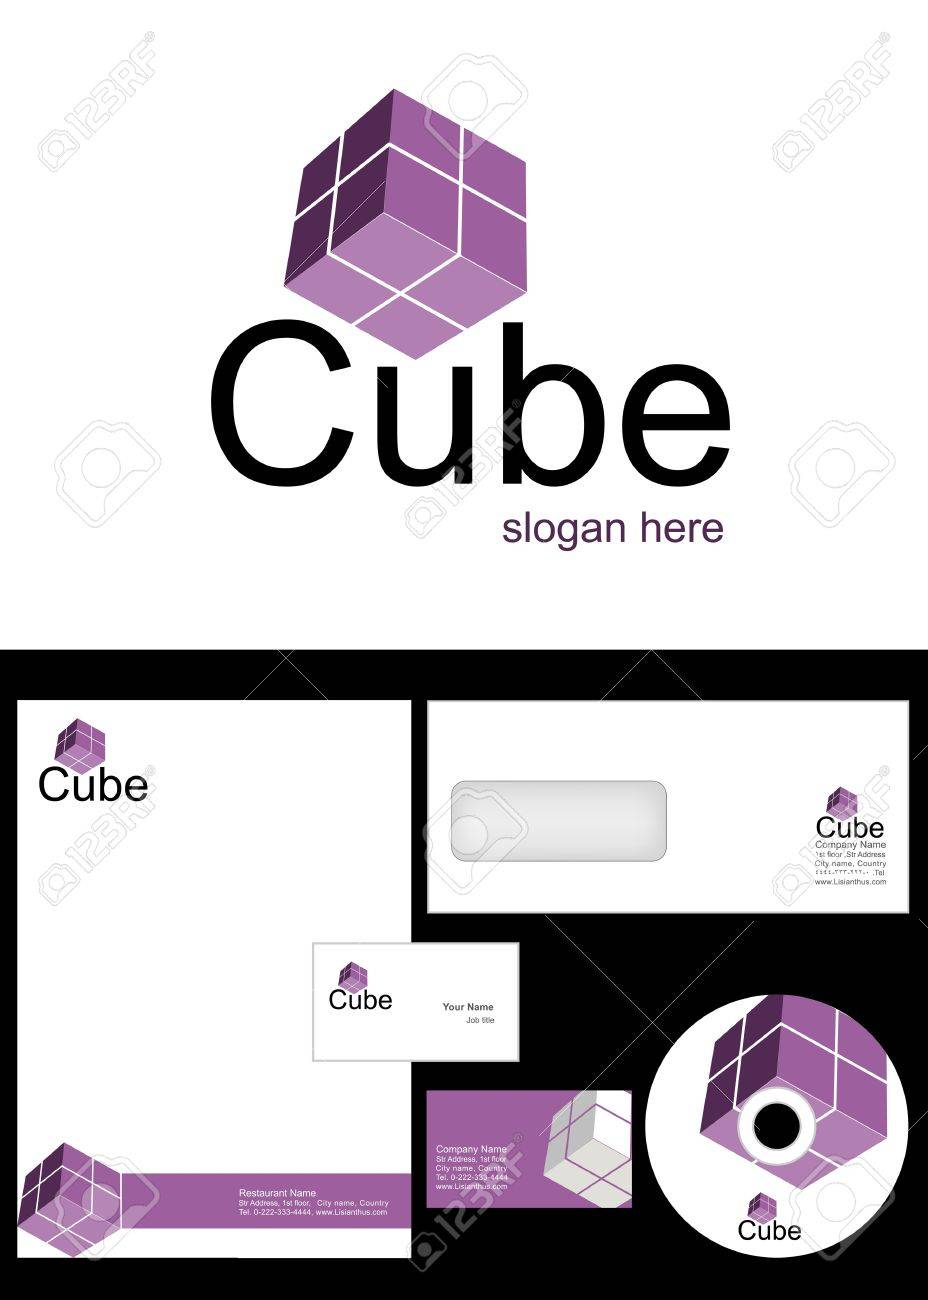 Cube Logo Design and corporate identity package including logo, letterhead, business card, envelope and cd label Stock Vector - 12947690